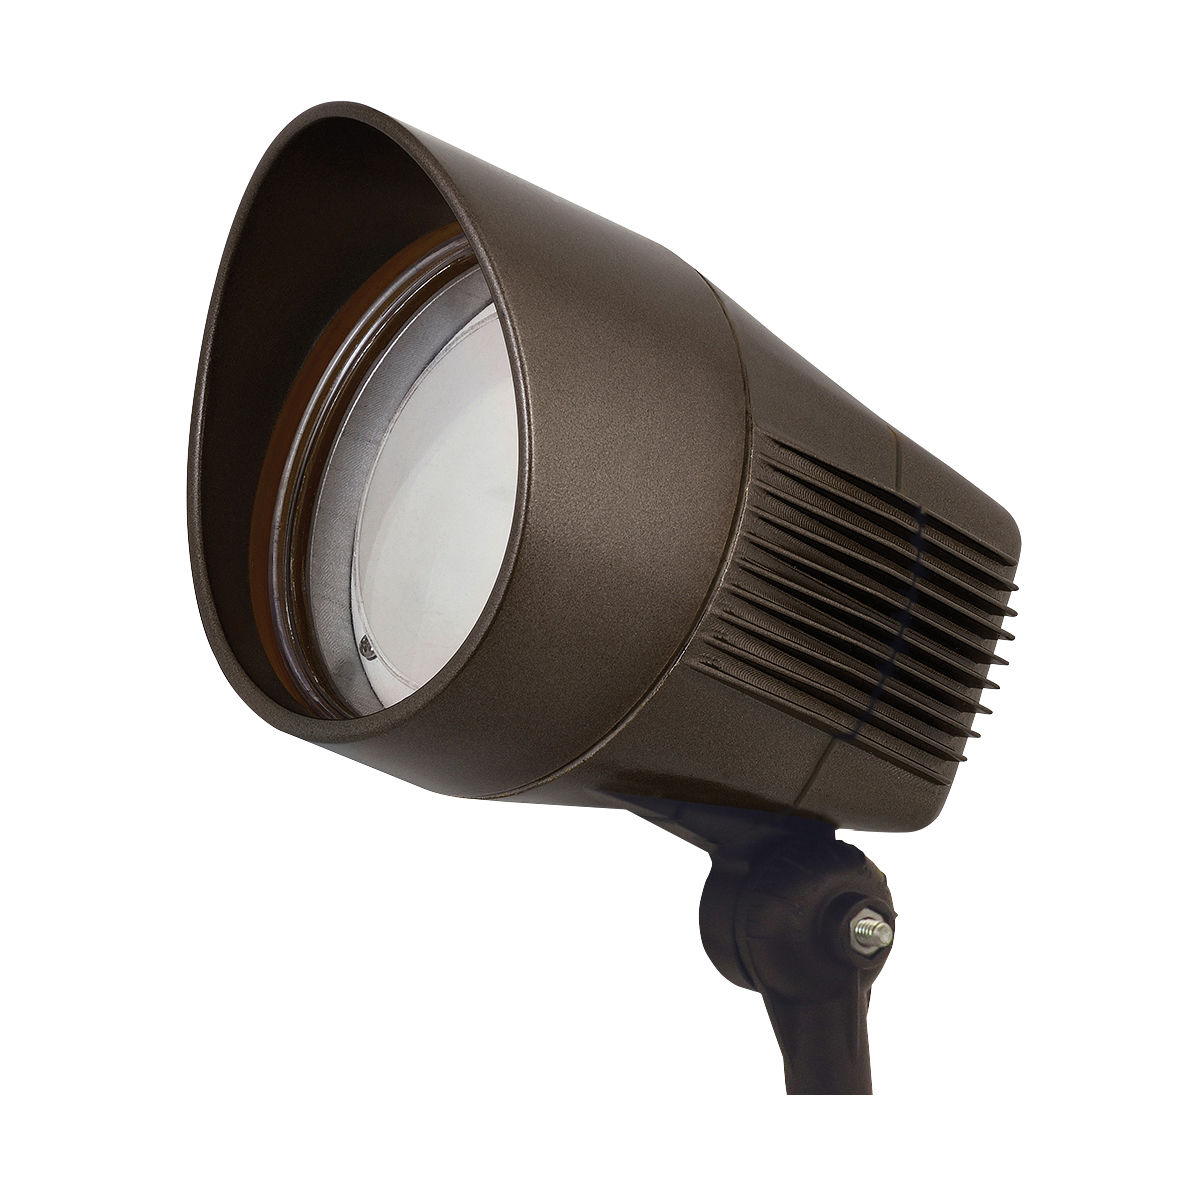 Colt flood brand hubbell outdoor lighting by hubbell outdoor lighting collection name tradeselect holcoltprodimage aloadofball Image collections